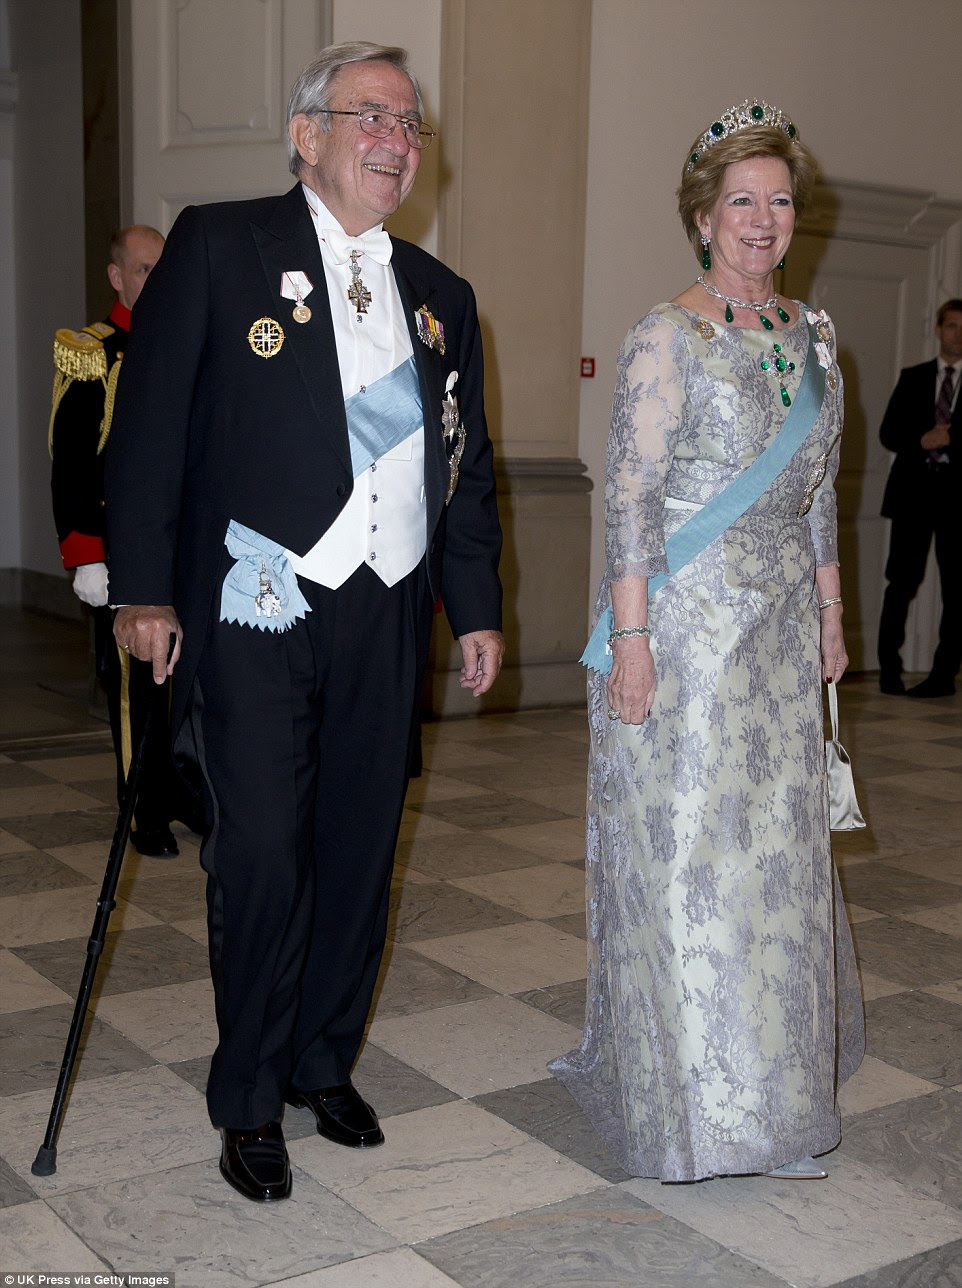 Emeralds: King Constantine of Greece and Queen Anne-Marie of Greec